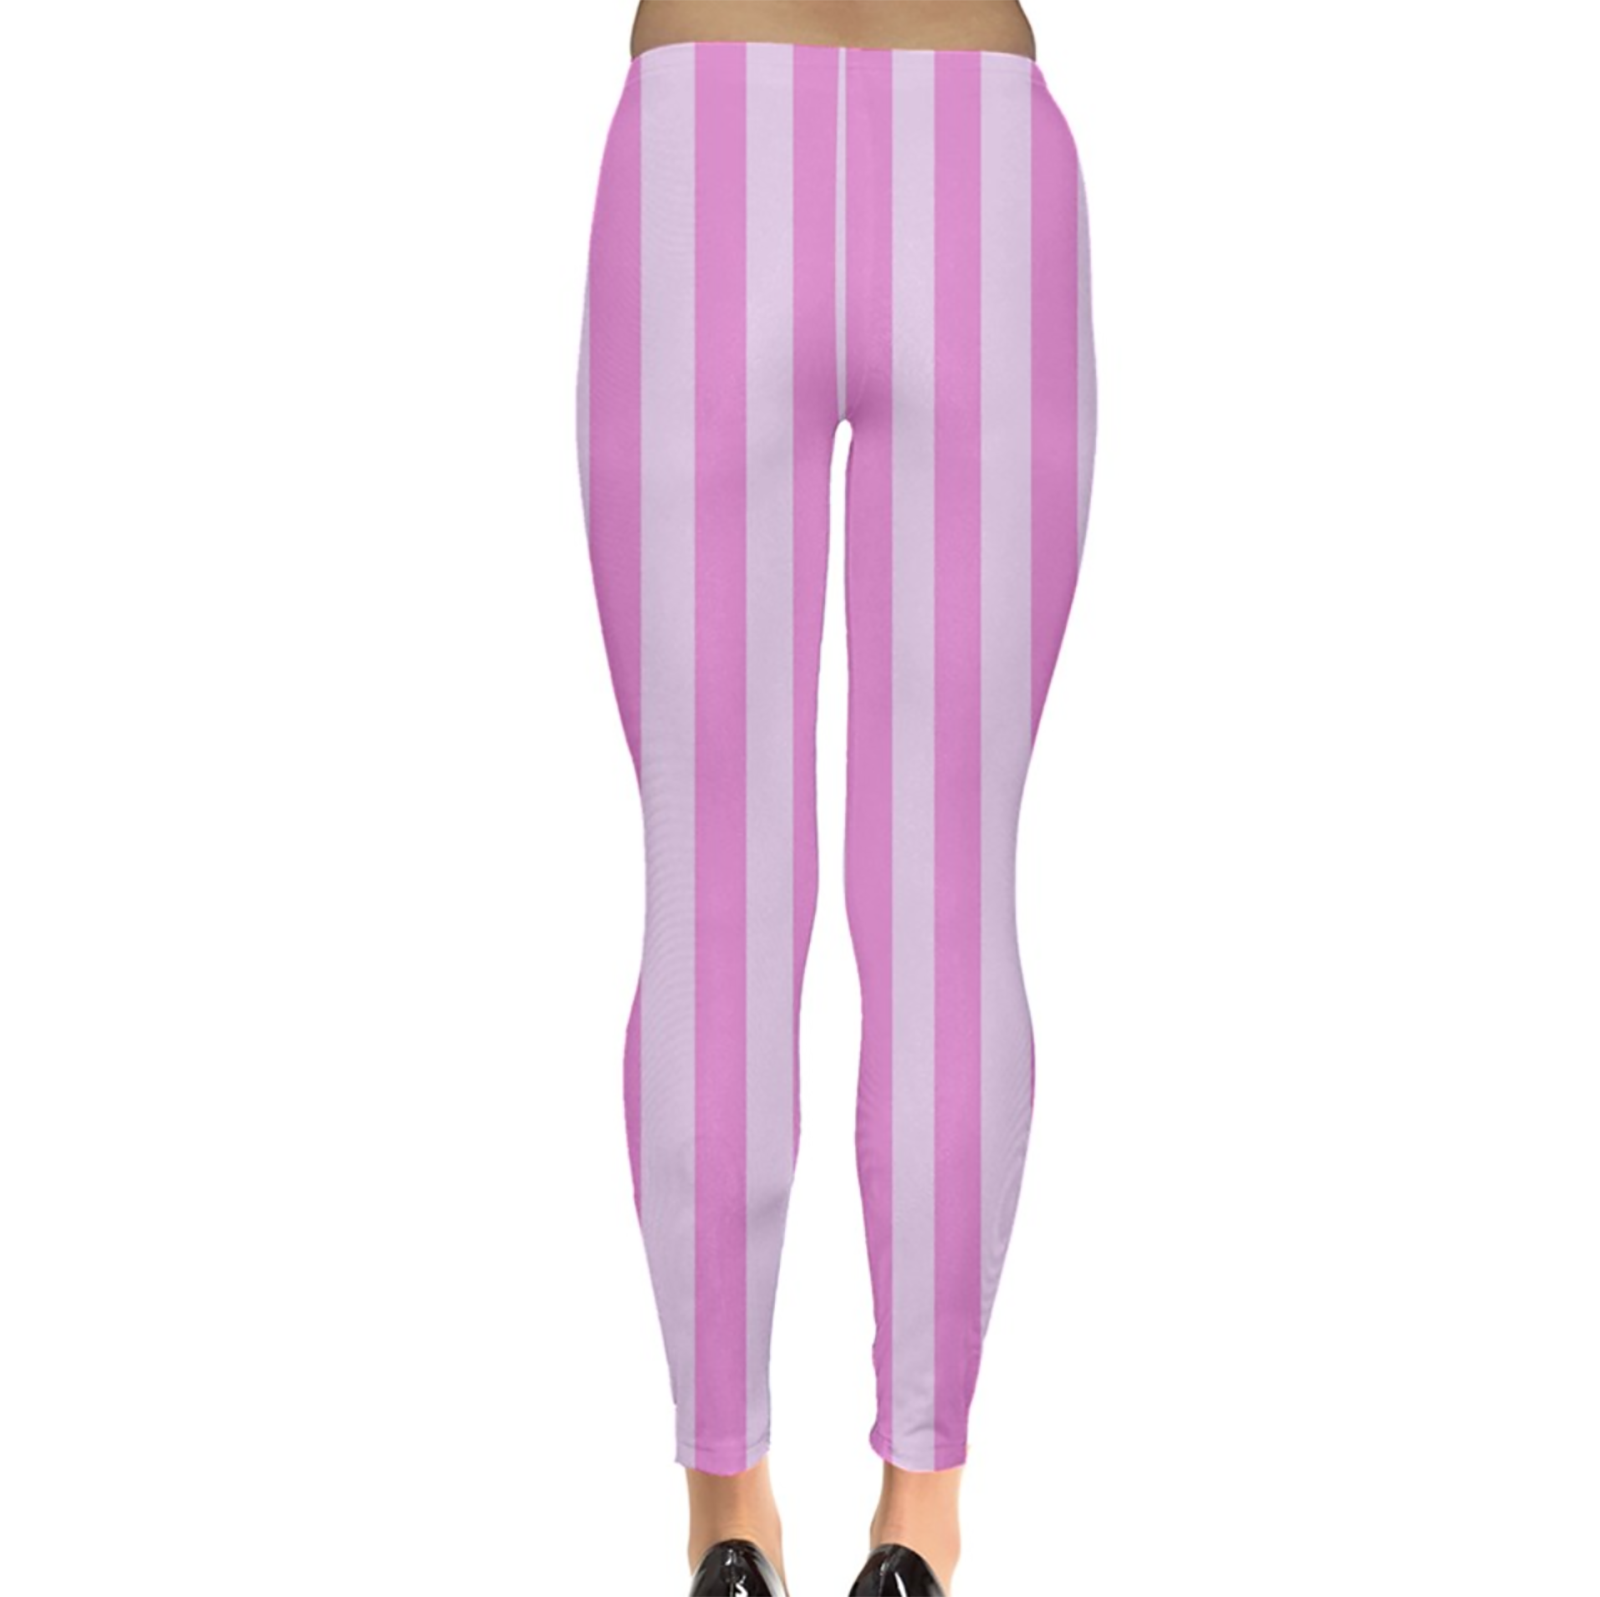 Candy Store Leggings (Pink Stripes)